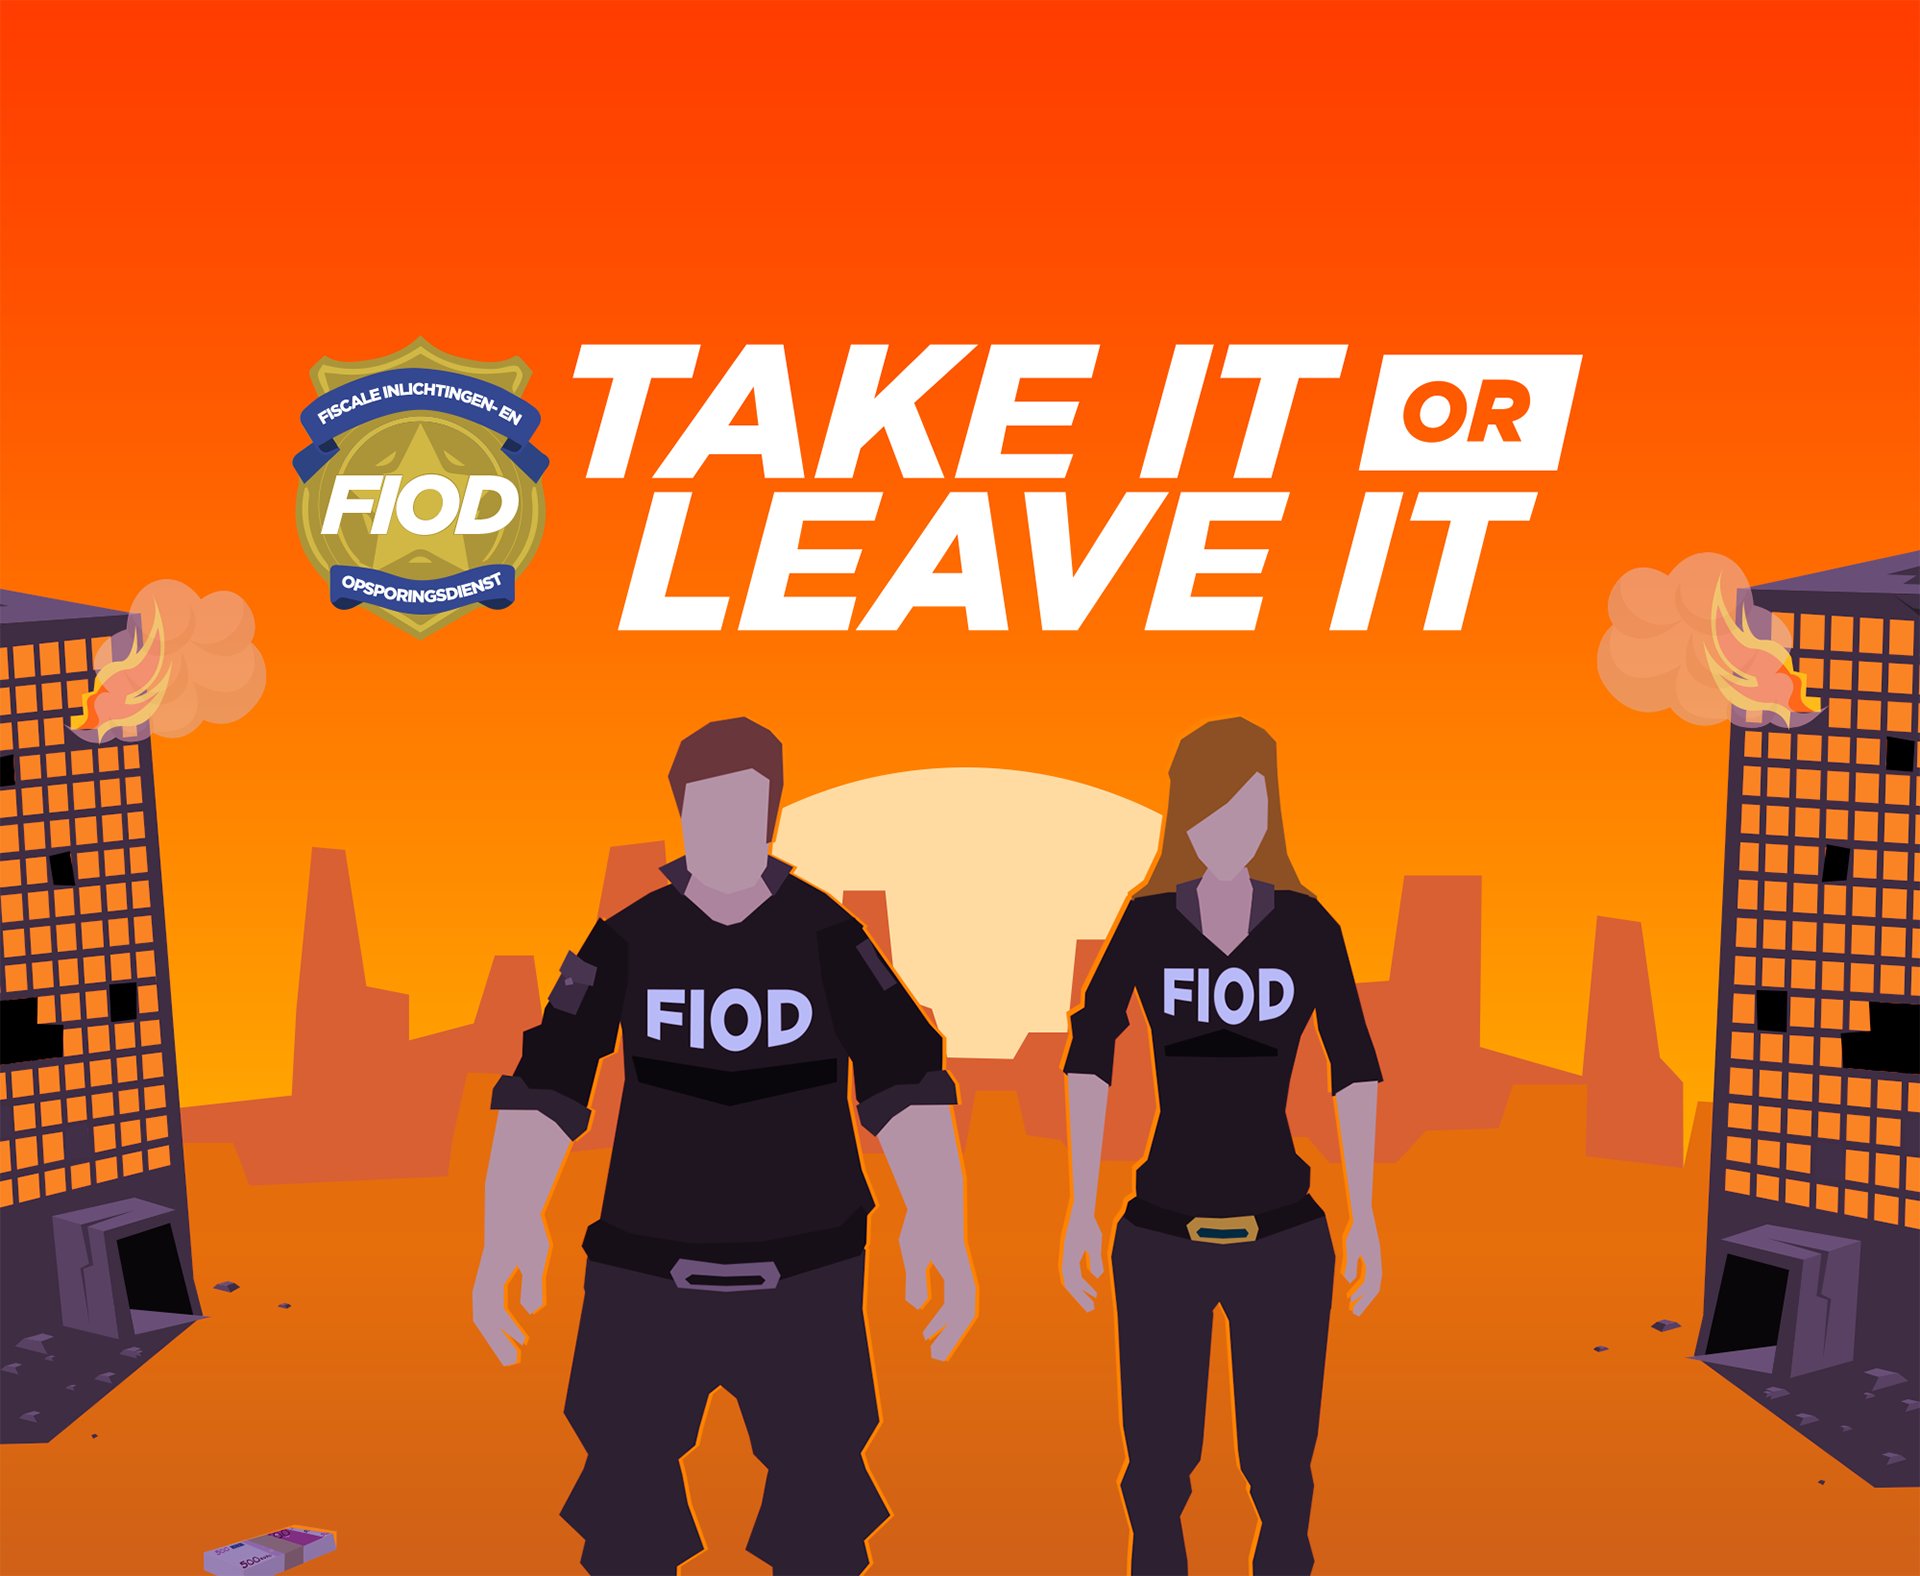 FIOD – Take it or Leave it